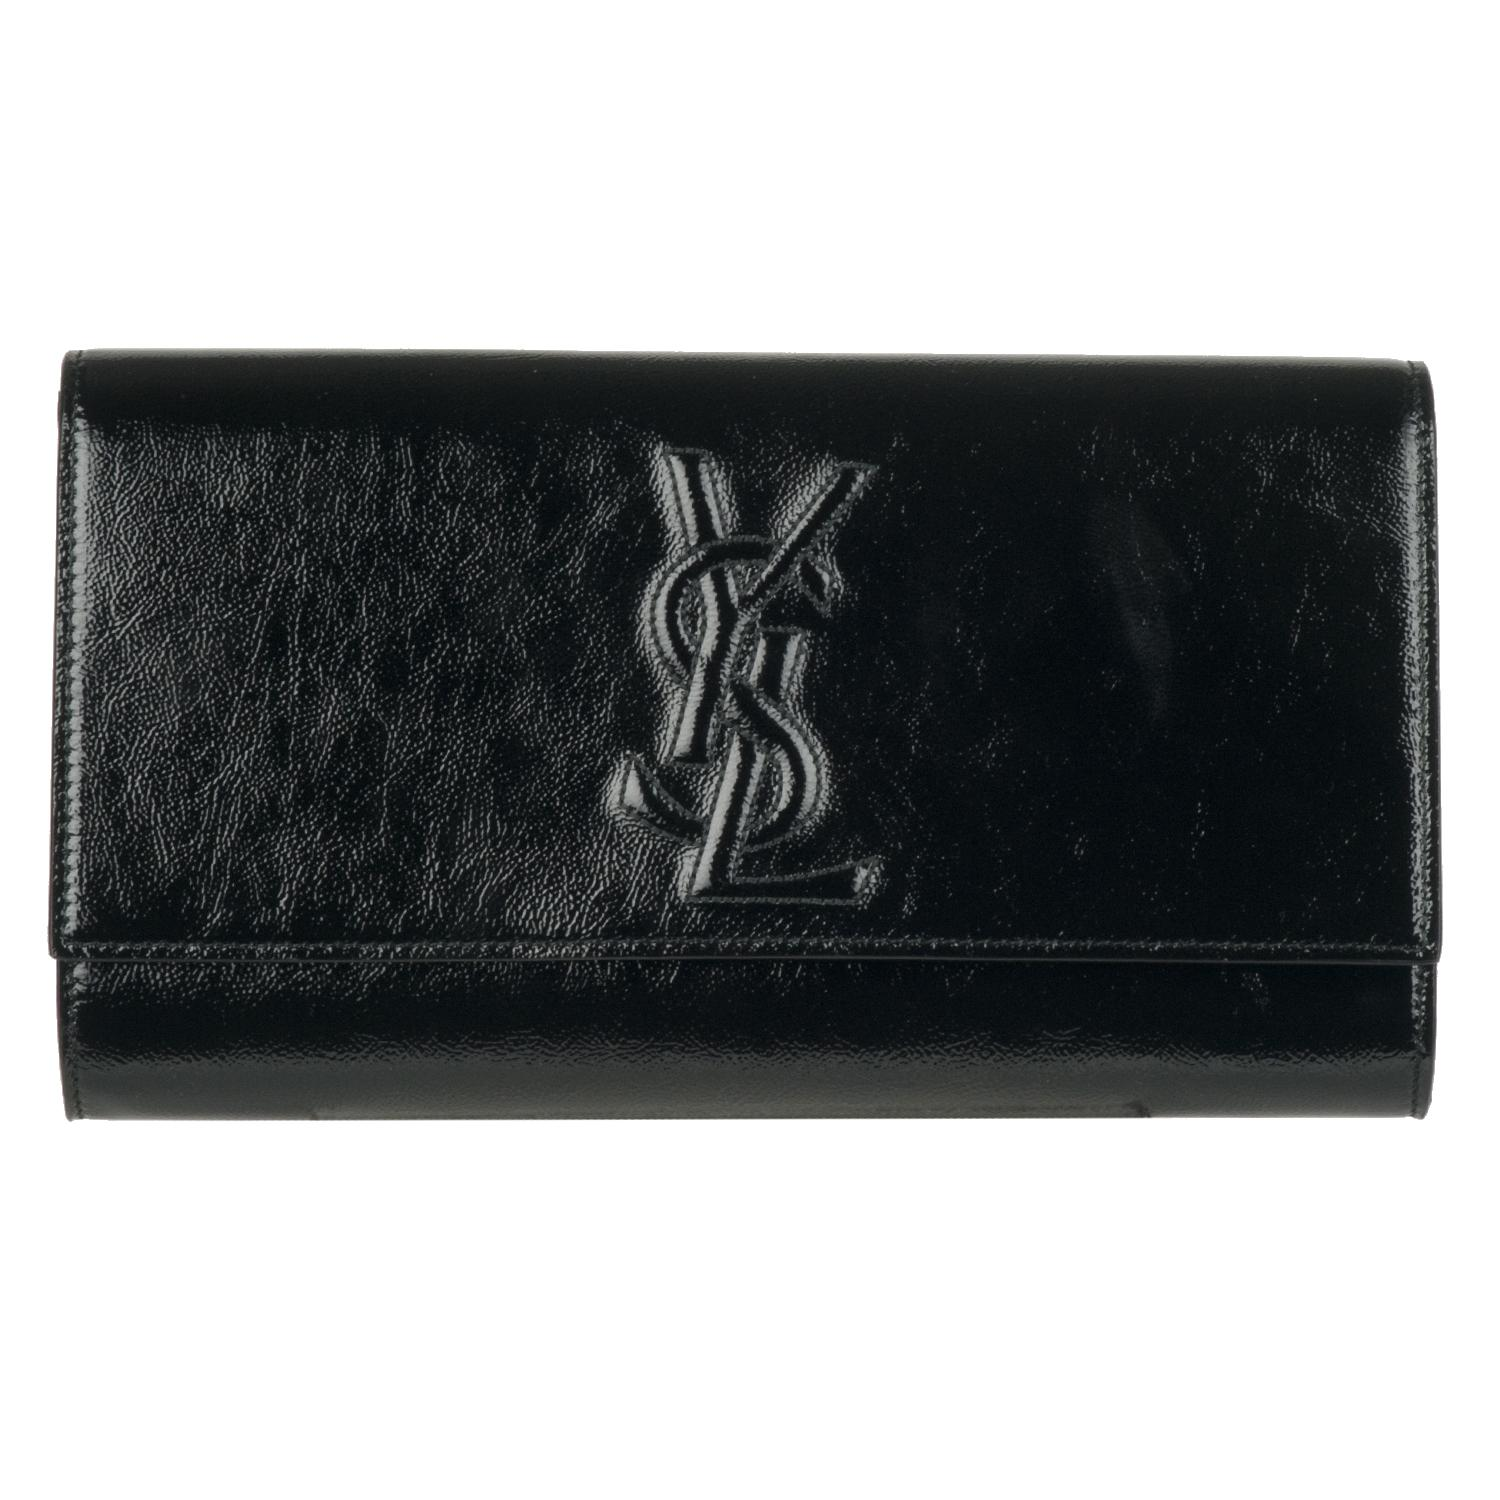 vogue bags replica - Yves Saint Laurent 203855 Large Black Patent Leather Clutch ...